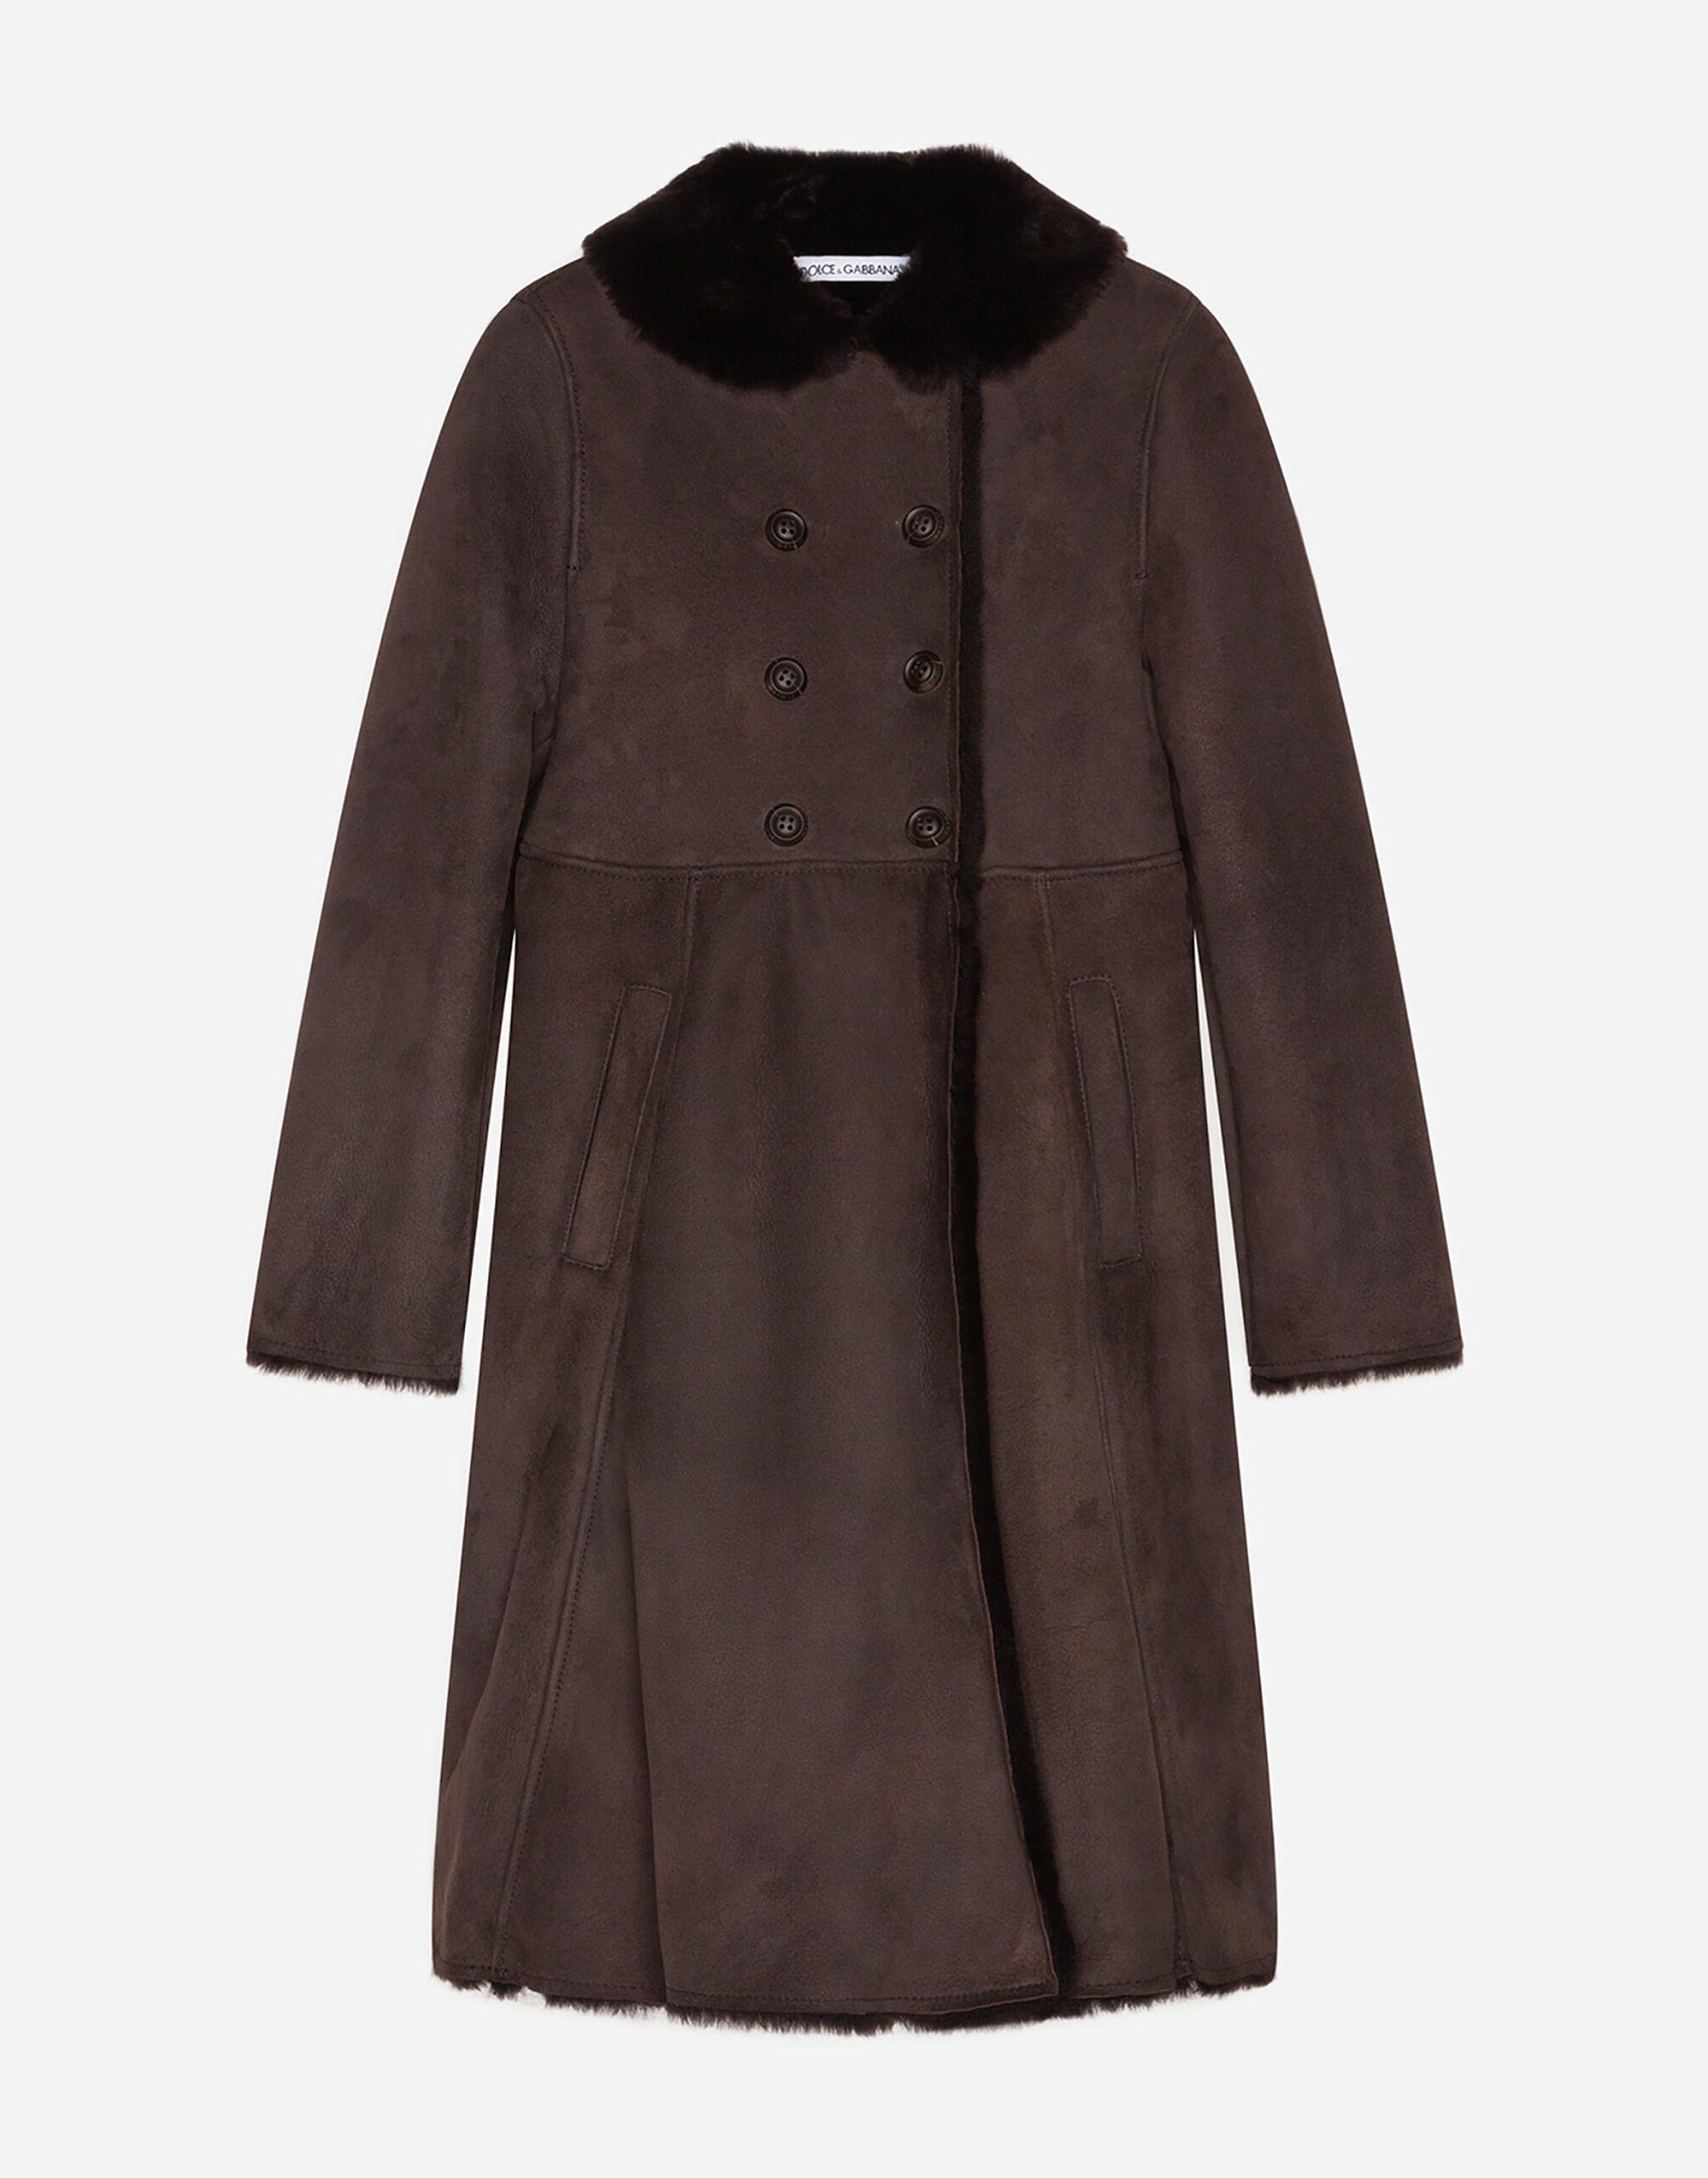 Double-breasted shearling coat with decorative buttons